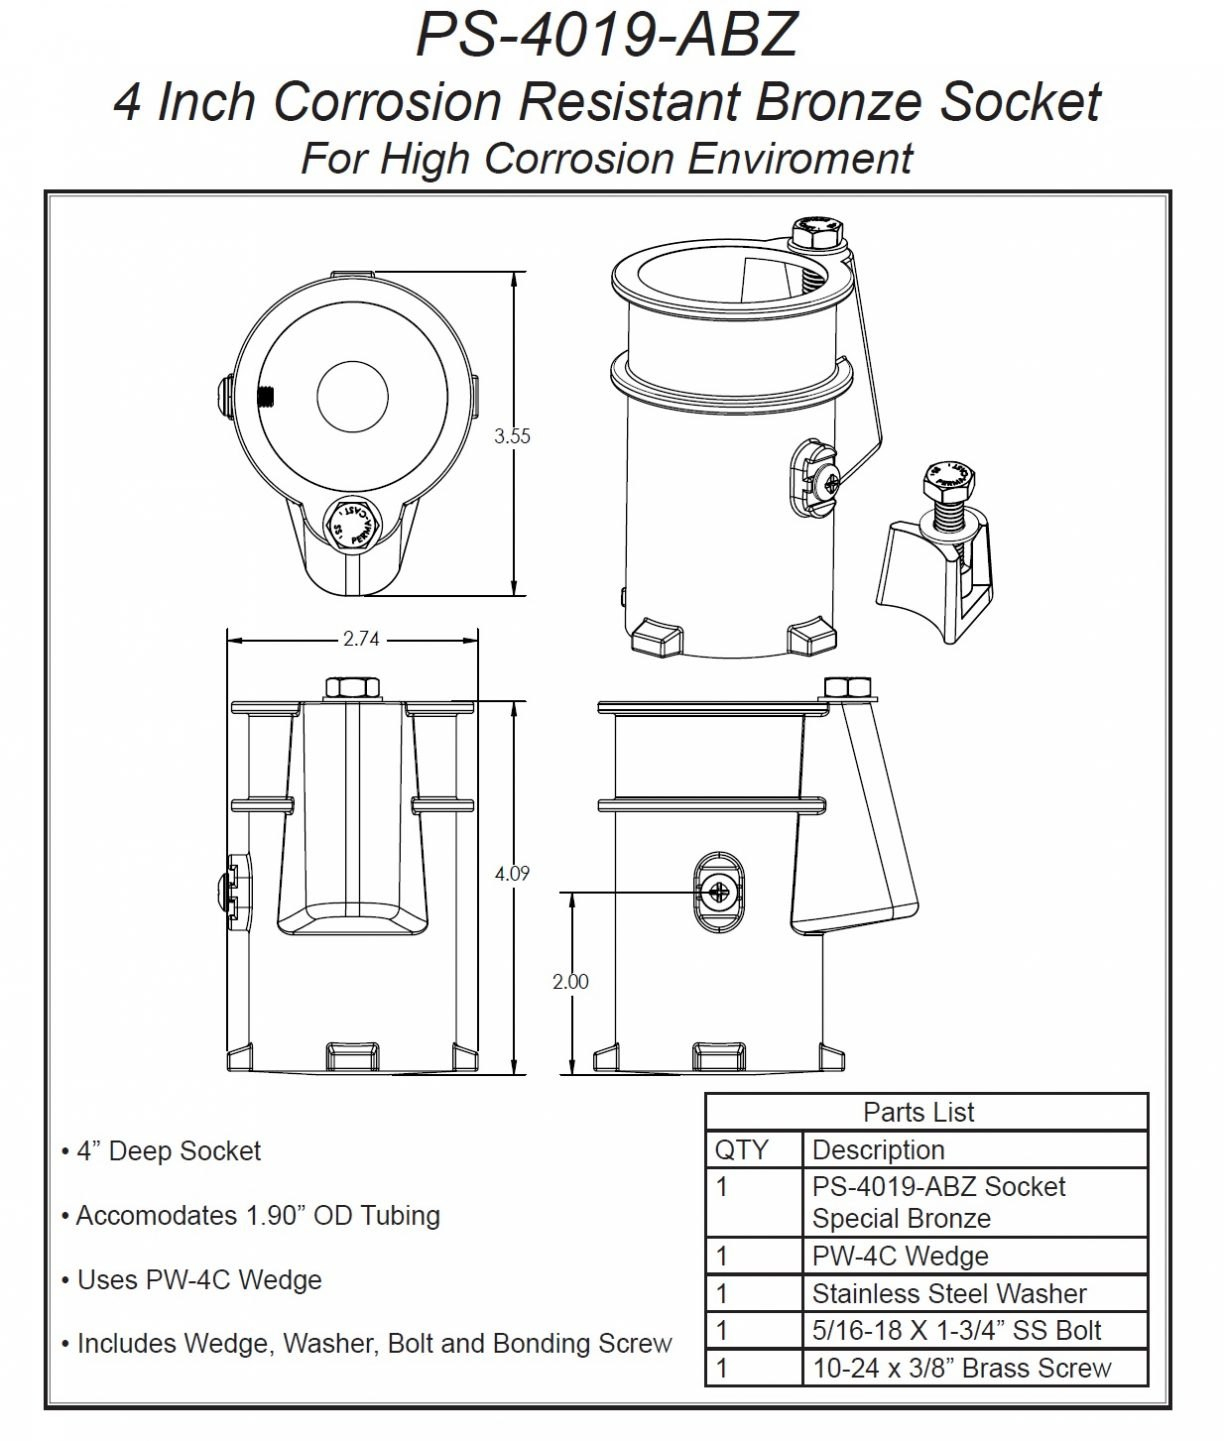 hayward super ii pump wiring diagram Download-Building Diagram Template Fresh 220v Timer Wiring Diagram In 220v Pool Pump Wiring Diagram Best 6-r